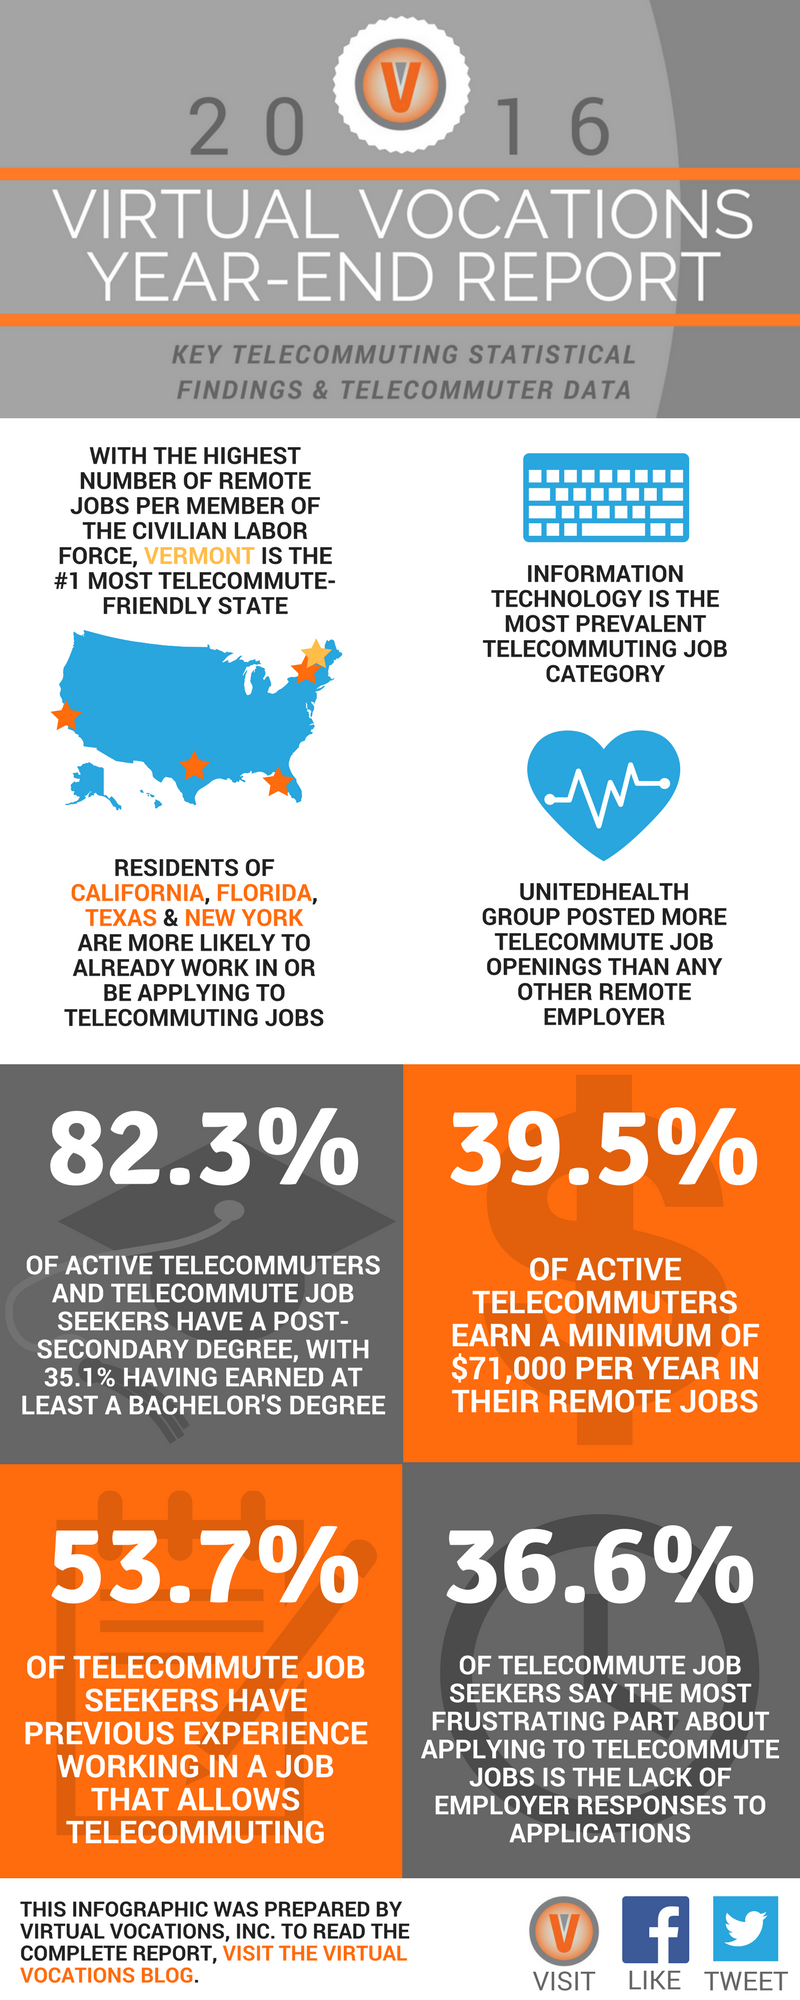 virtual vocations publishes 2016 year end report highlighting telecommuting trends and insights